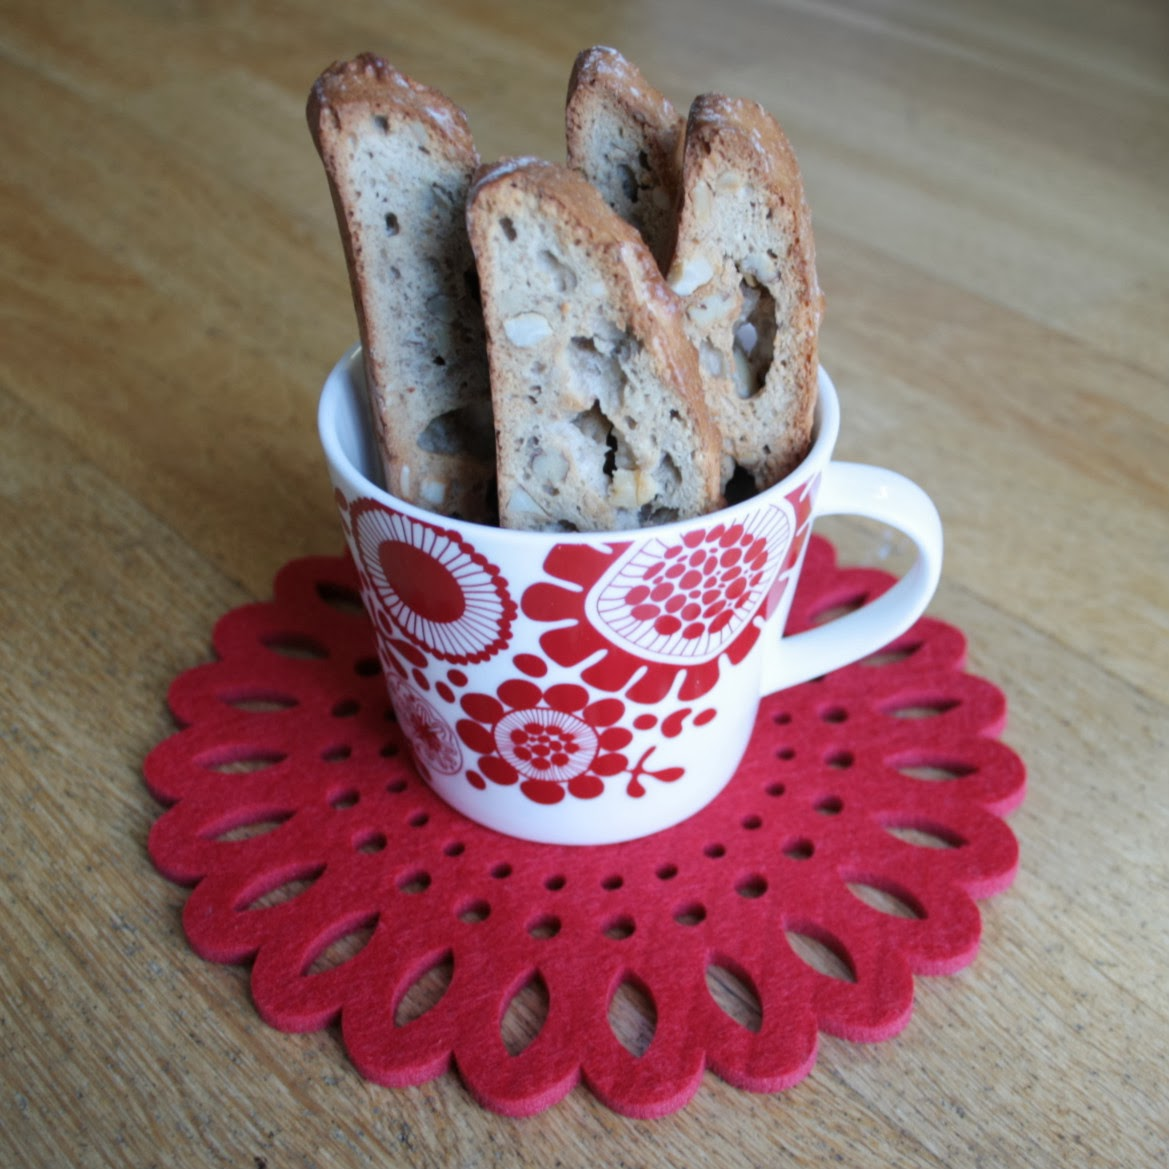 Banana & Nut Biscotti - the perfect recipe for when you have overripe bananas that need to be used up!